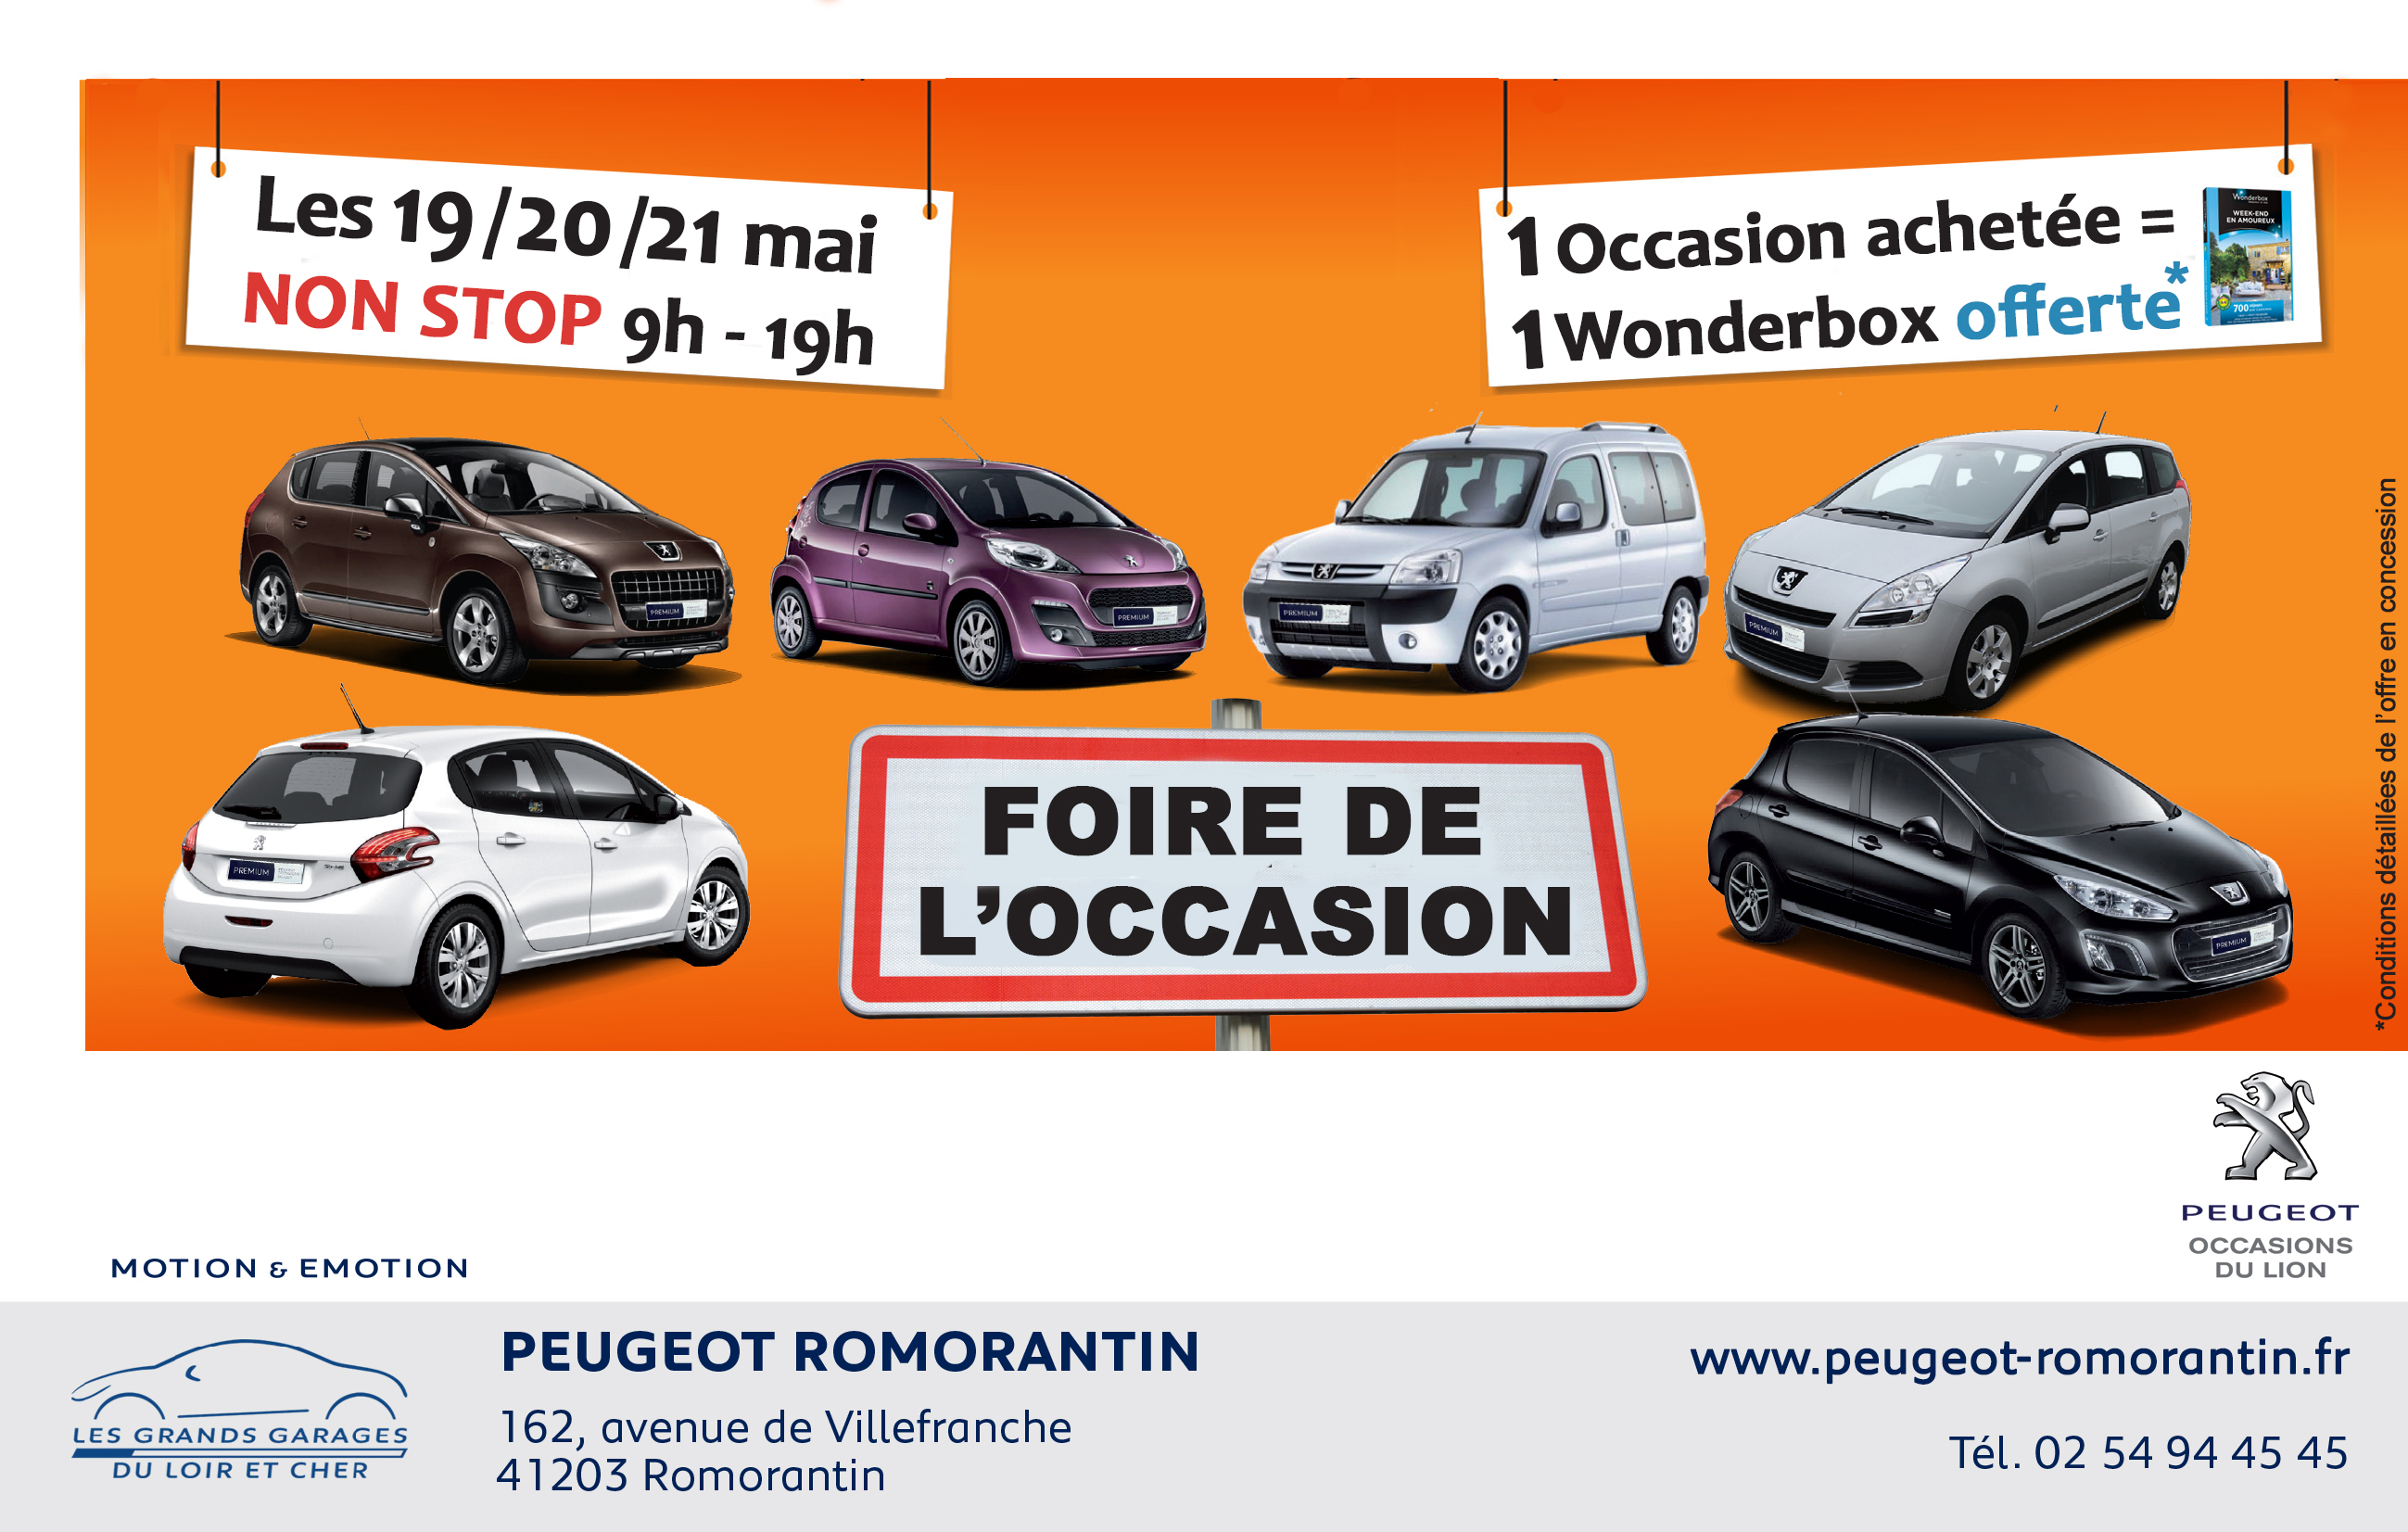 foire de l 39 occasion romorantin les 19 20 et 21 mai peugeot loir et cher blois vend me romorantin. Black Bedroom Furniture Sets. Home Design Ideas